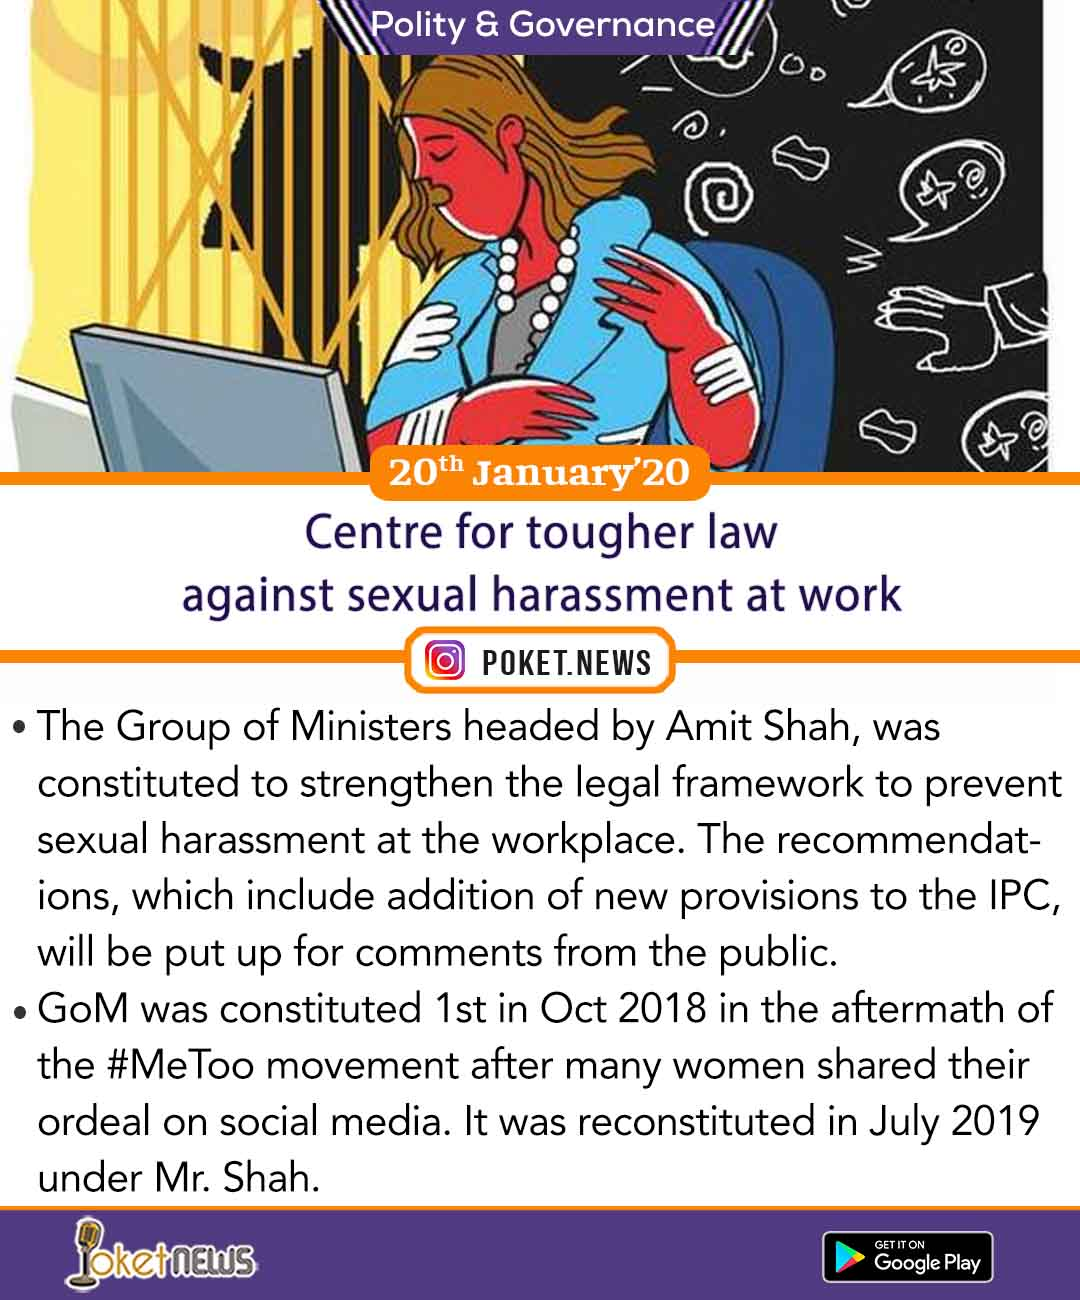 Centre for tougher law against sexual harassment at work